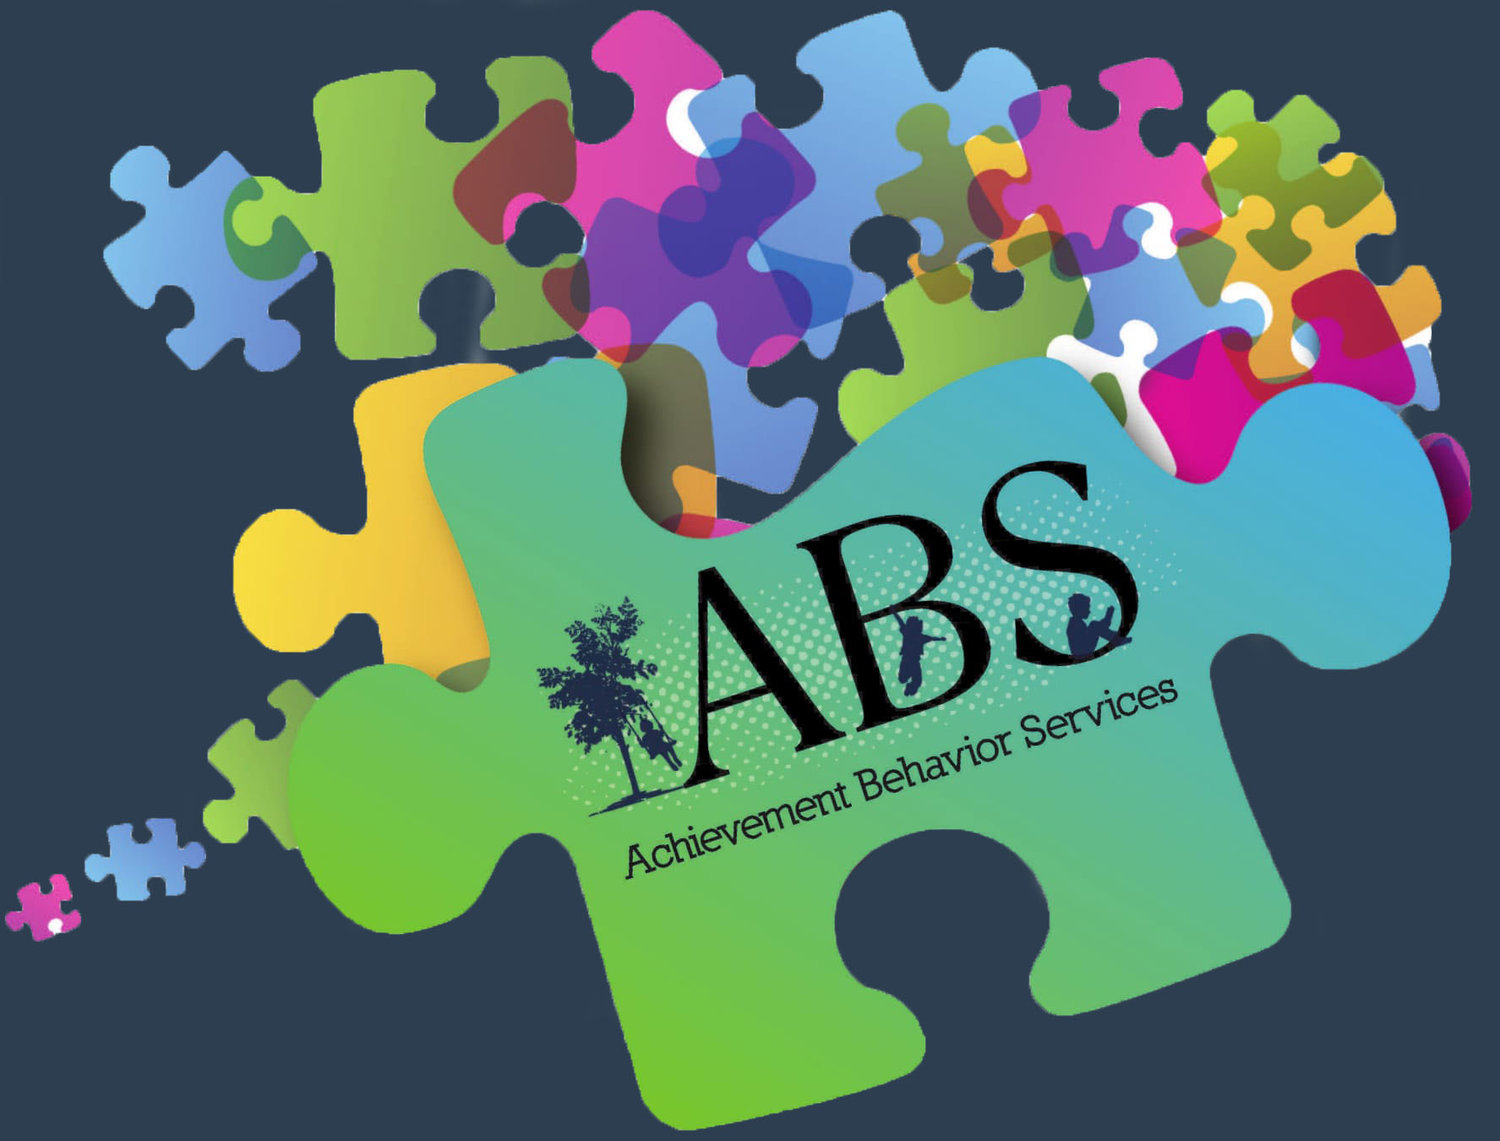 Achievement Behavior Services